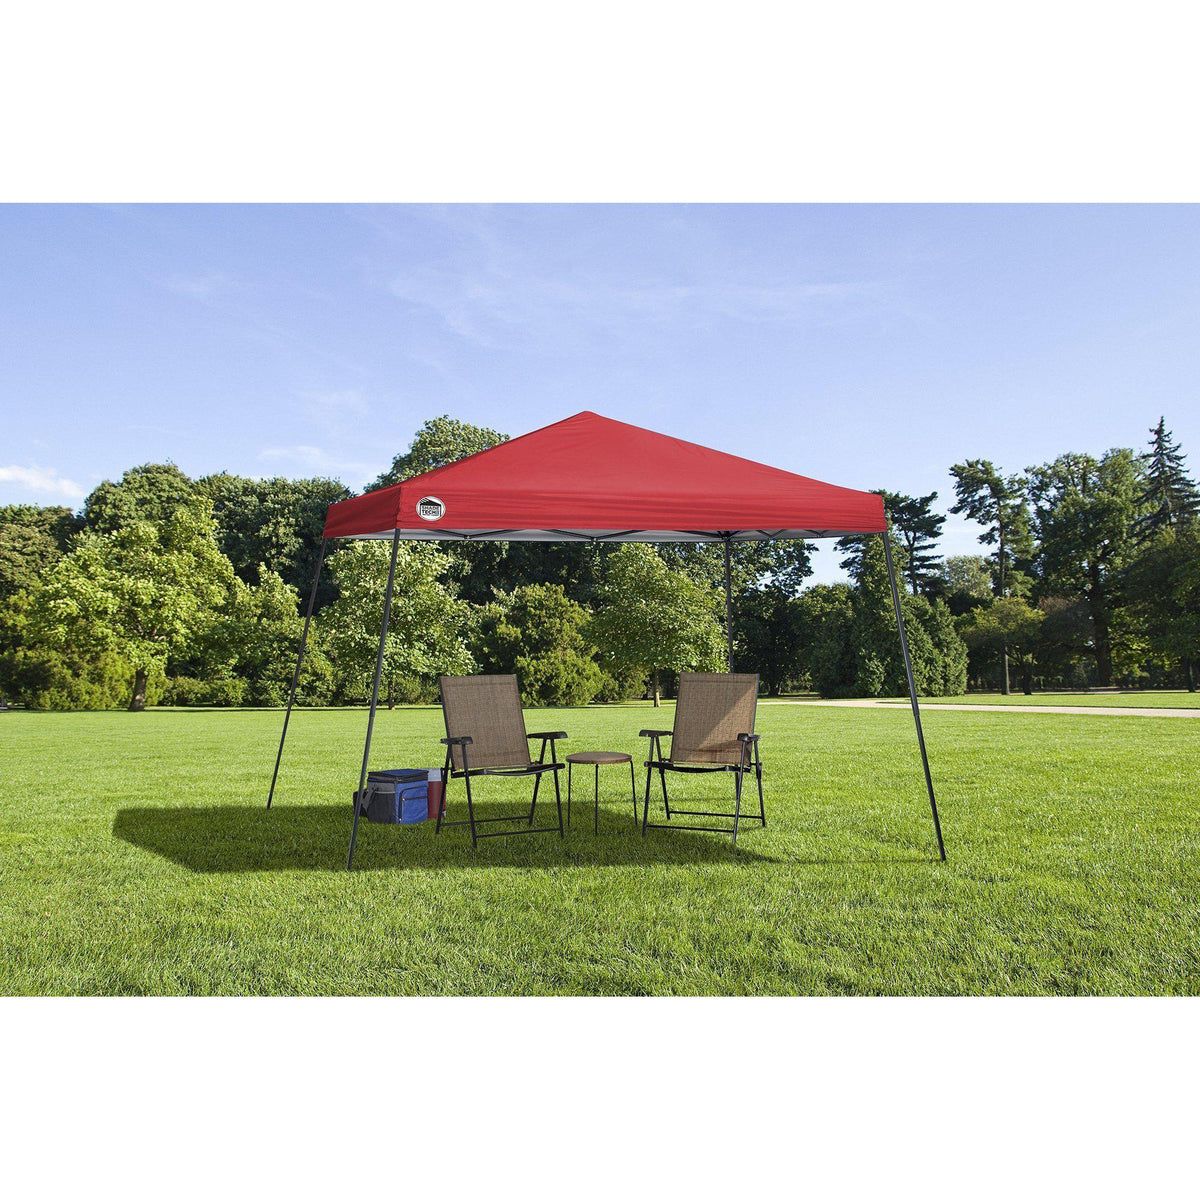 Quik Shade 167505DS Tech Slant Leg Canopy, 12 x 12', Red